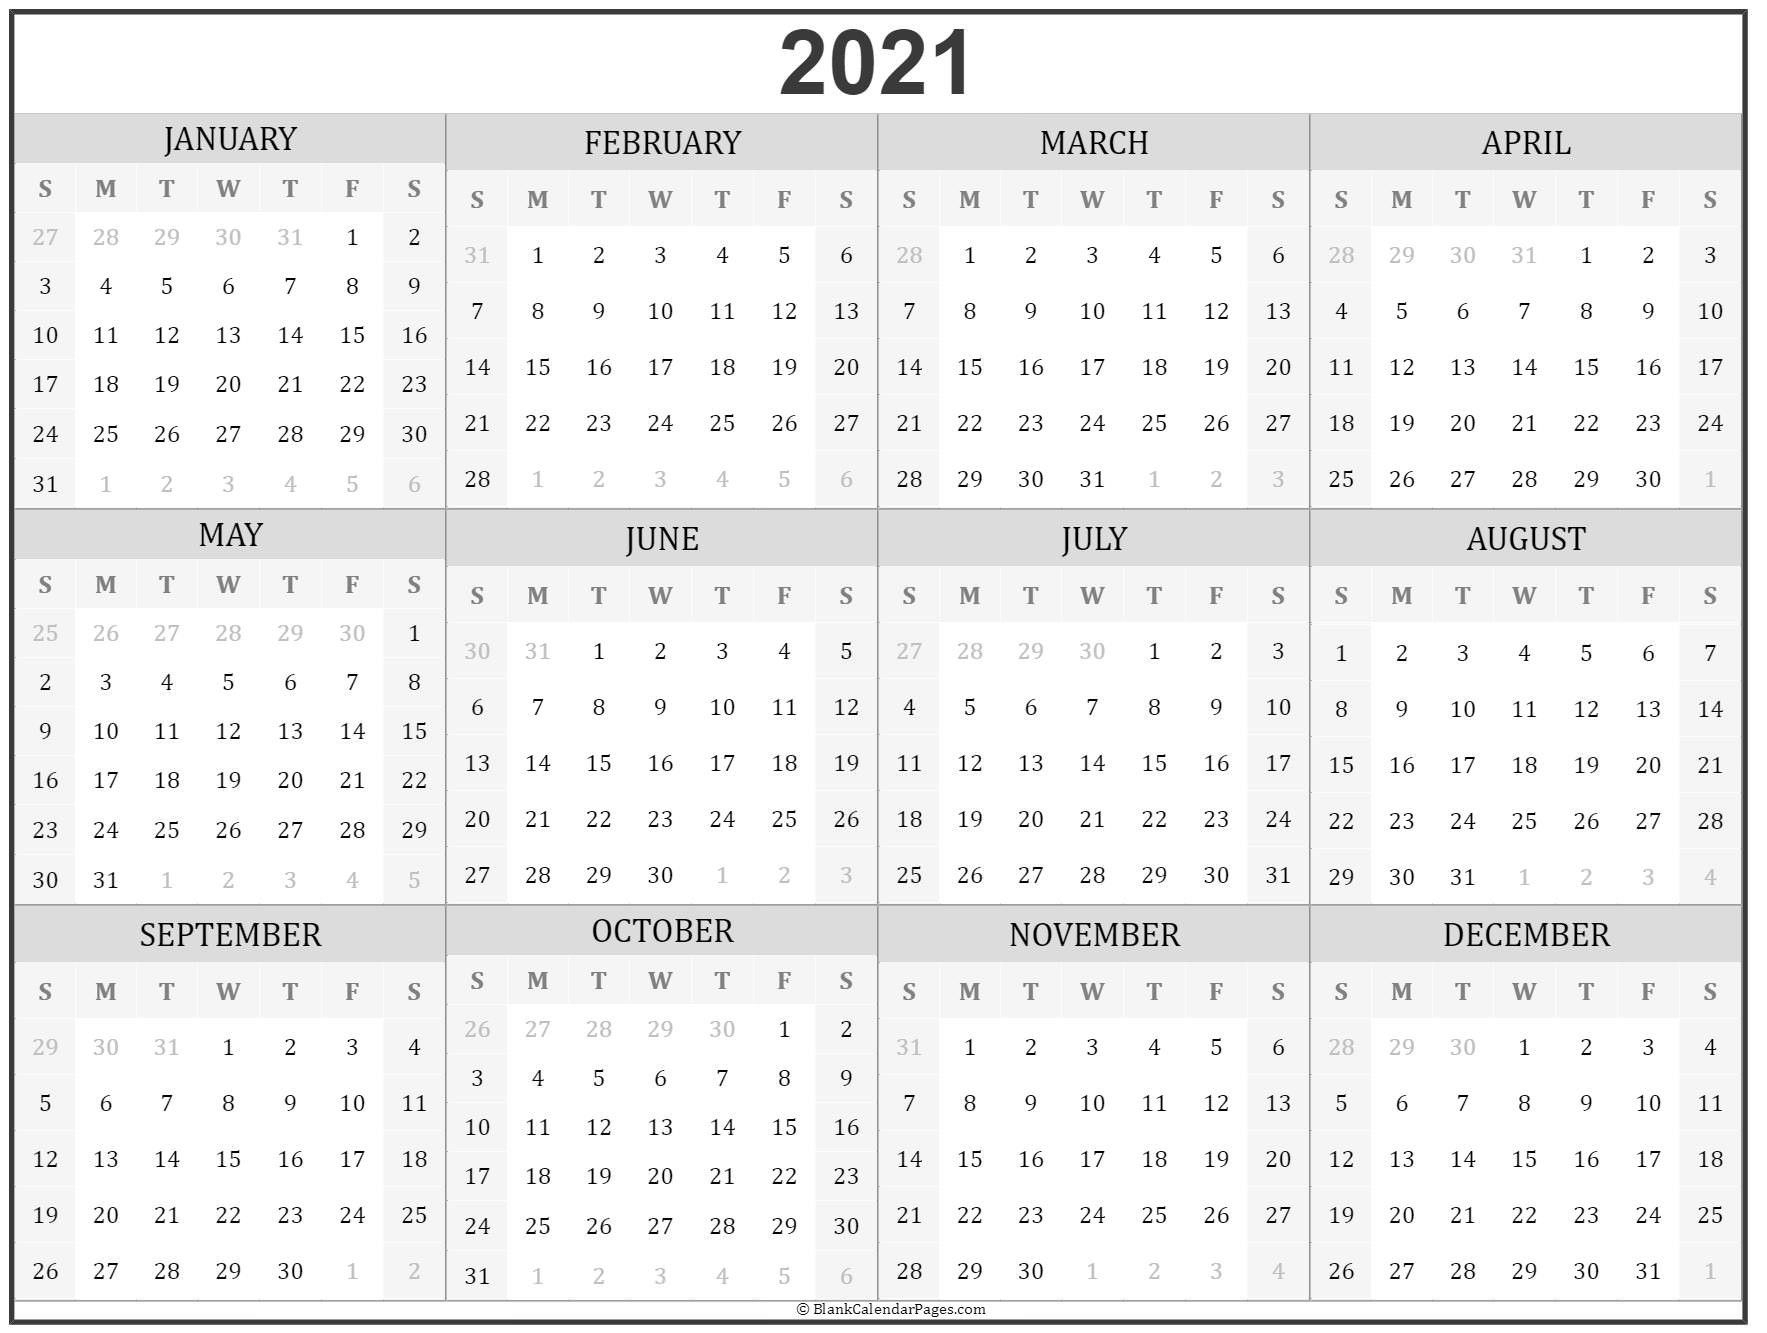 2021 Yearly Calendar Template Printable – Welcome For You To for 2021 Printable Yearly Calendar Template